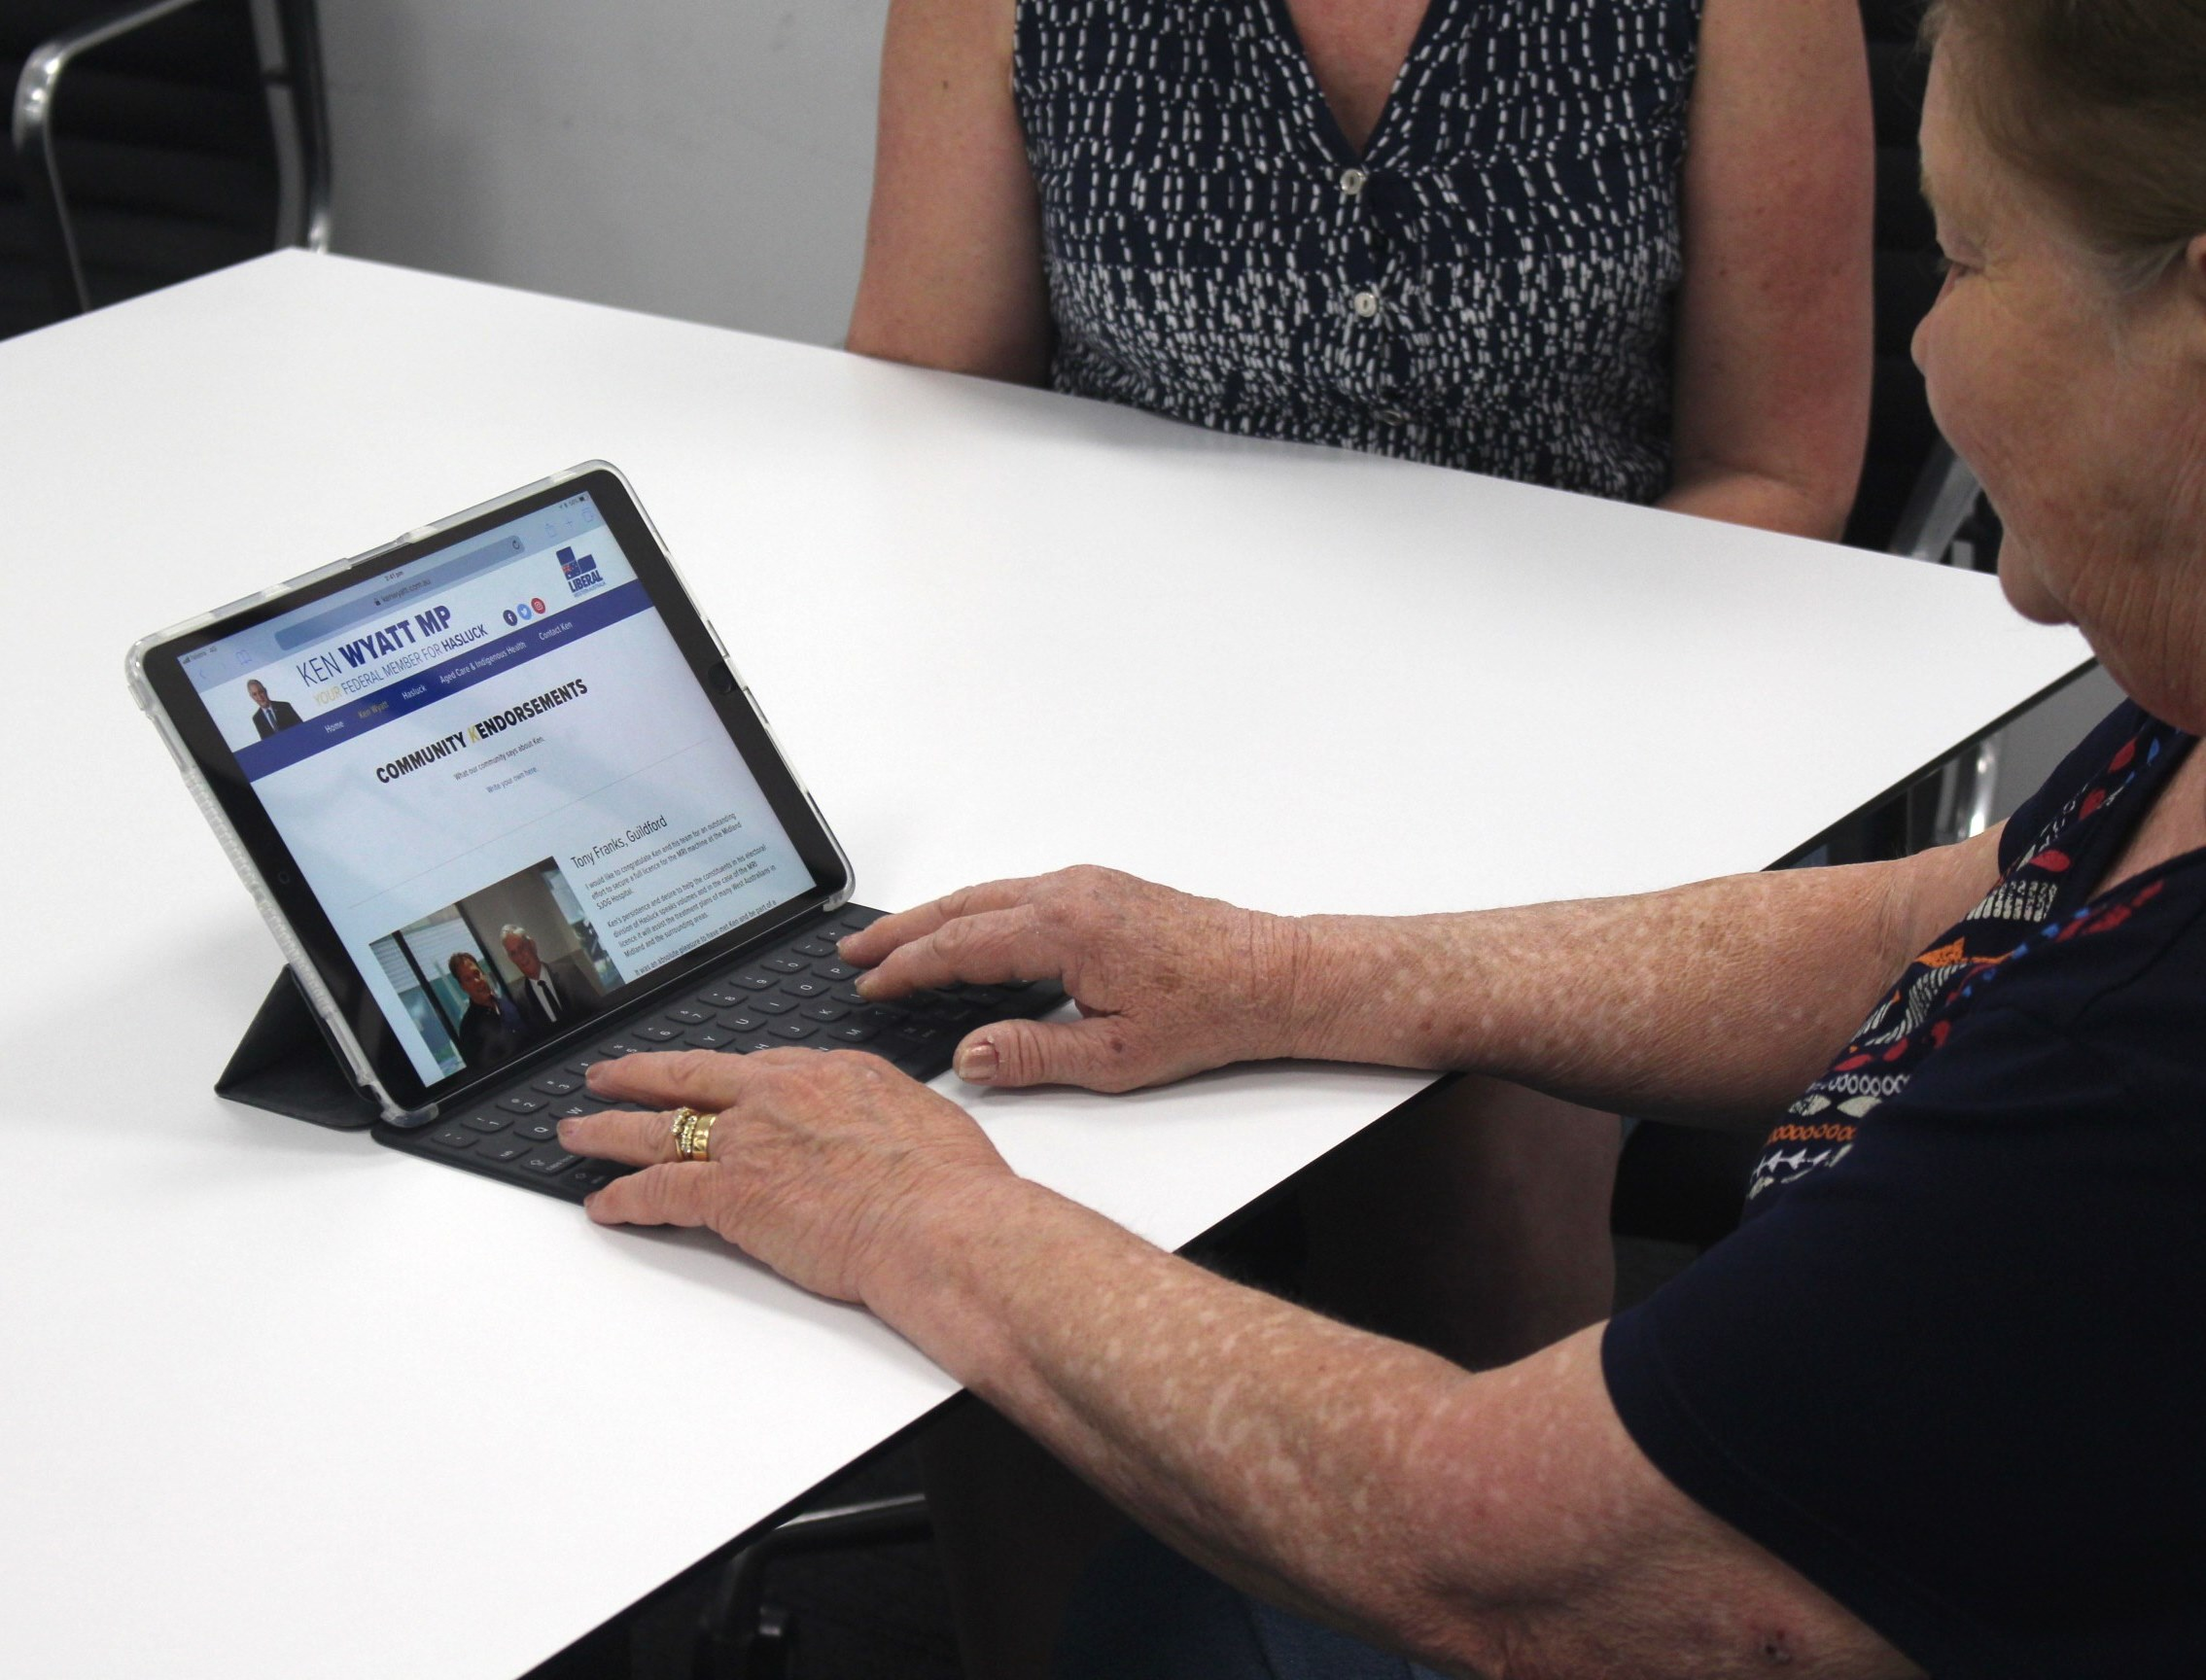 """Wendy Pearce, Local author - I rang the office and said """"I know you probably cant help, but I just need someone to listen to me."""" Not only did they listen, but Ken's office solved my issue with Centrelink in receiving the aged pension.For weeks I had boulders put in my way to get my pension approved, and like a road-grader, Linda from Ken's office just swept it all away within 48 hours. When I then called the office to thank Linda, a gentleman named Scott answered and was very patient with me; when I said to him that Linda was like a counsellor, he said """"that is what she is here for!""""Having met Ken on various occasions, I felt very confident that I could call his office and that he and his team would listen and be pro-active about my problem. Ken is a very approachable person, and I knew that his team would be a reflection of Ken. Hence I had no hesitation in coming to him in my hour of need."""